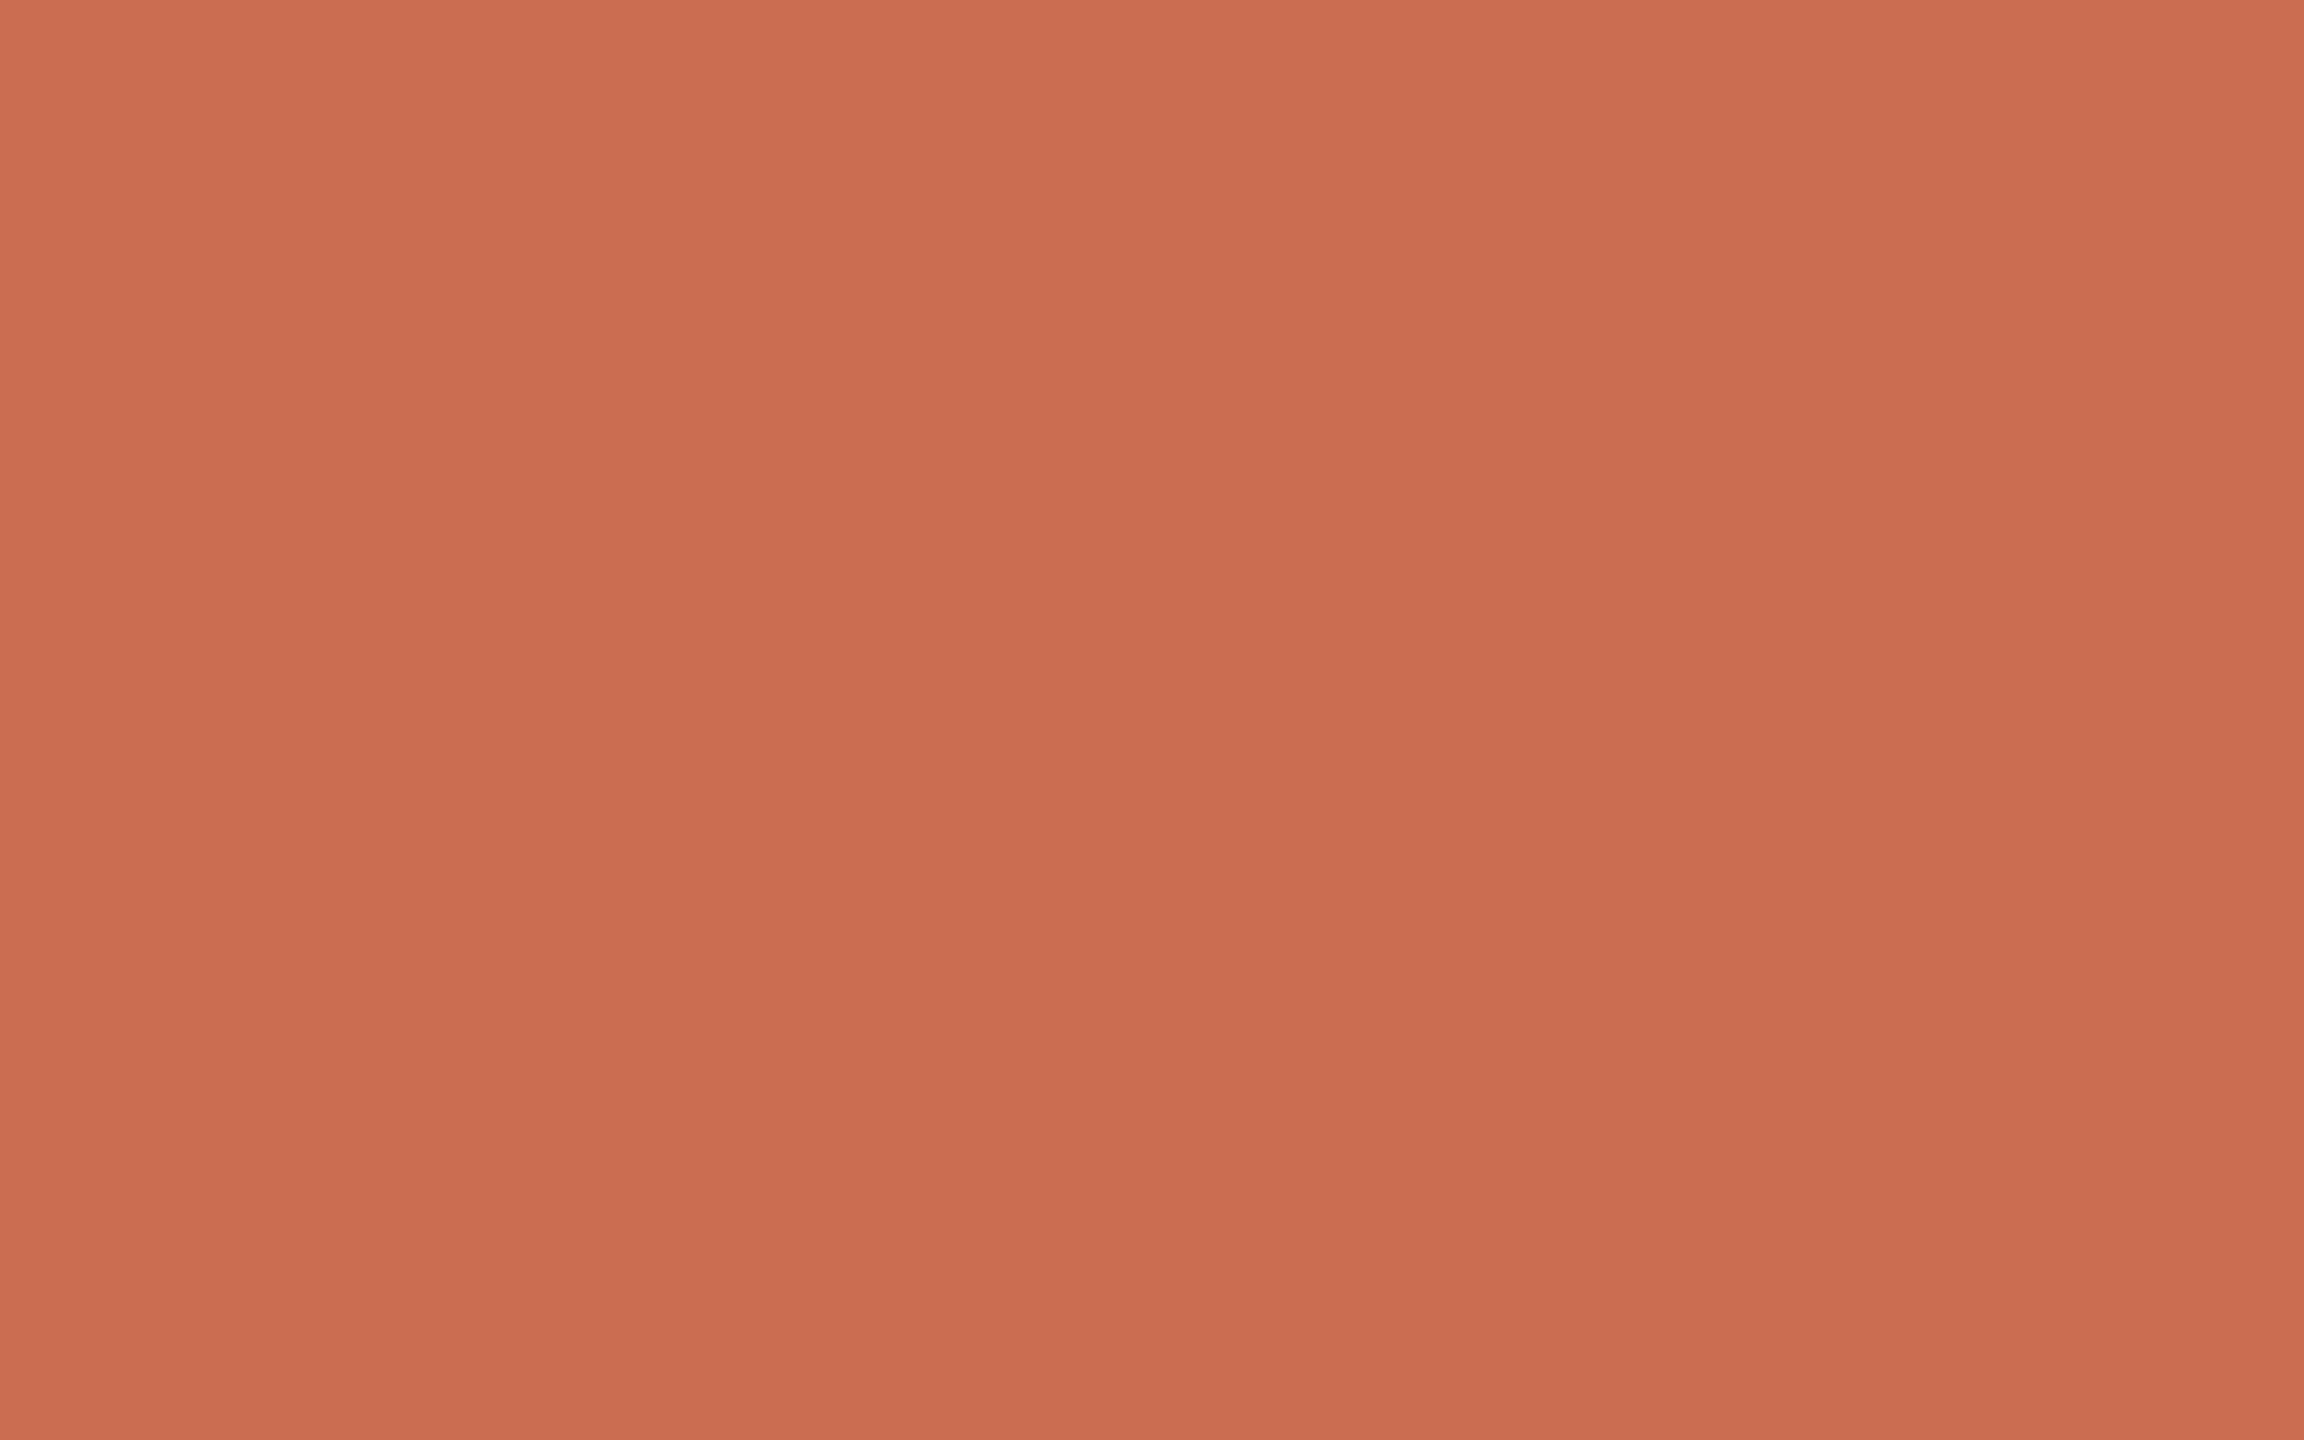 2304x1440 Copper Red Solid Color Background